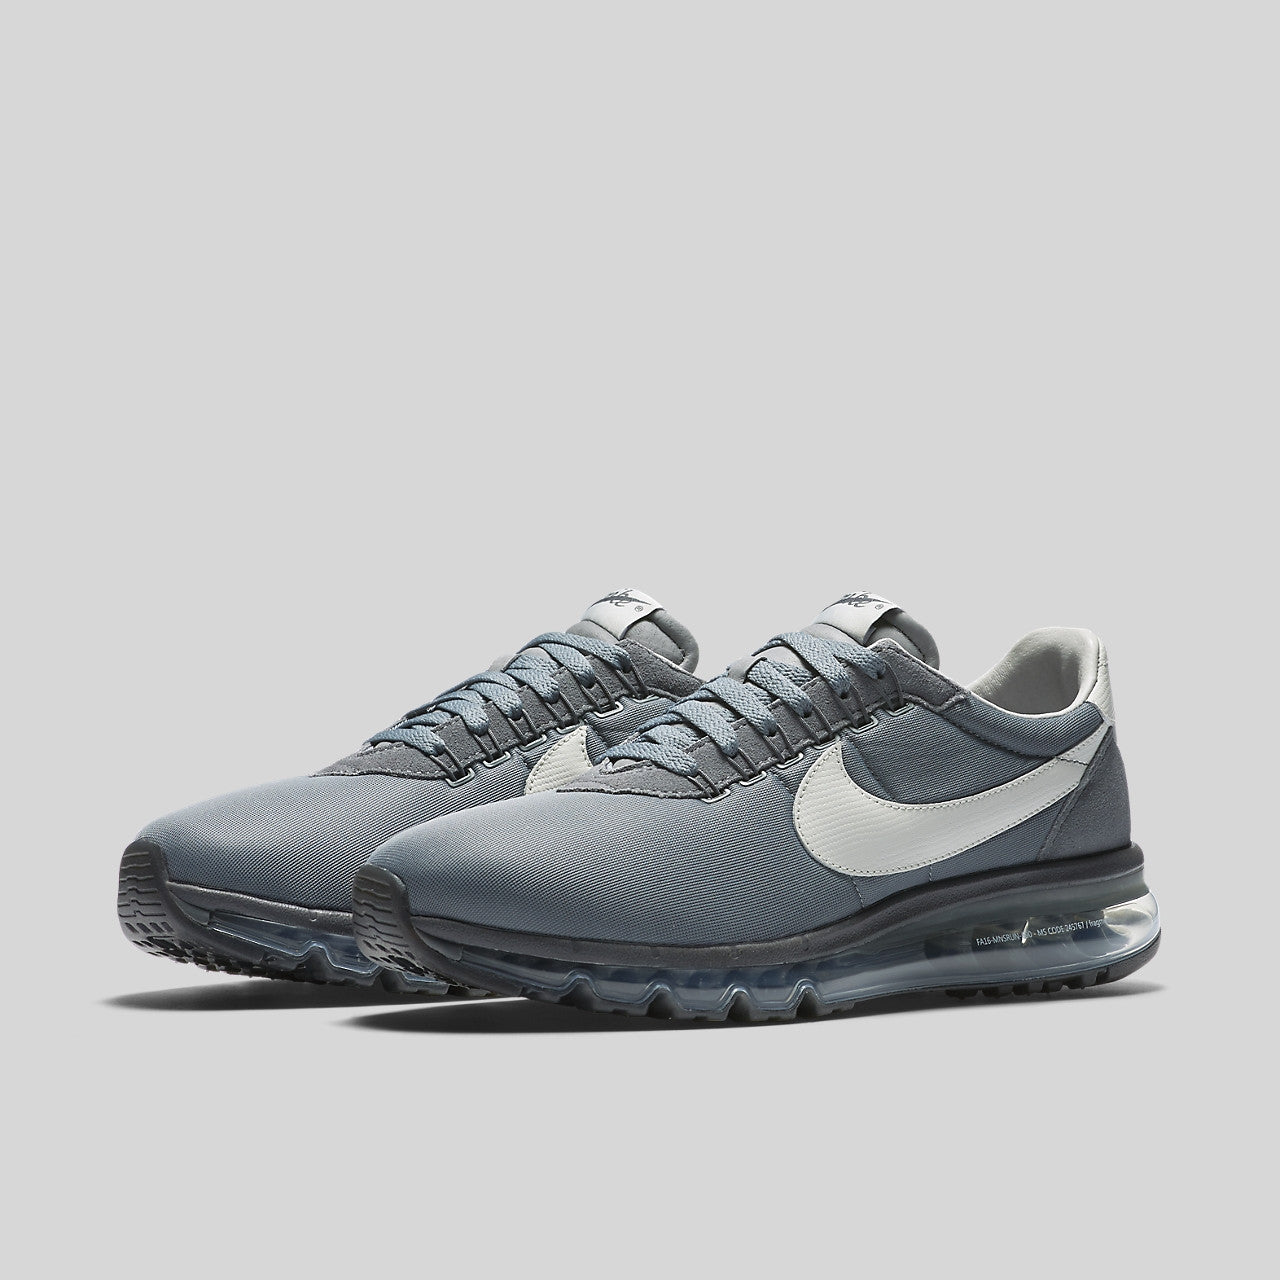 wholesale dealer 8431f a8e9f Nike Air Max LD-Zero / Fragment Cool Grey. Item Number: 885893-002